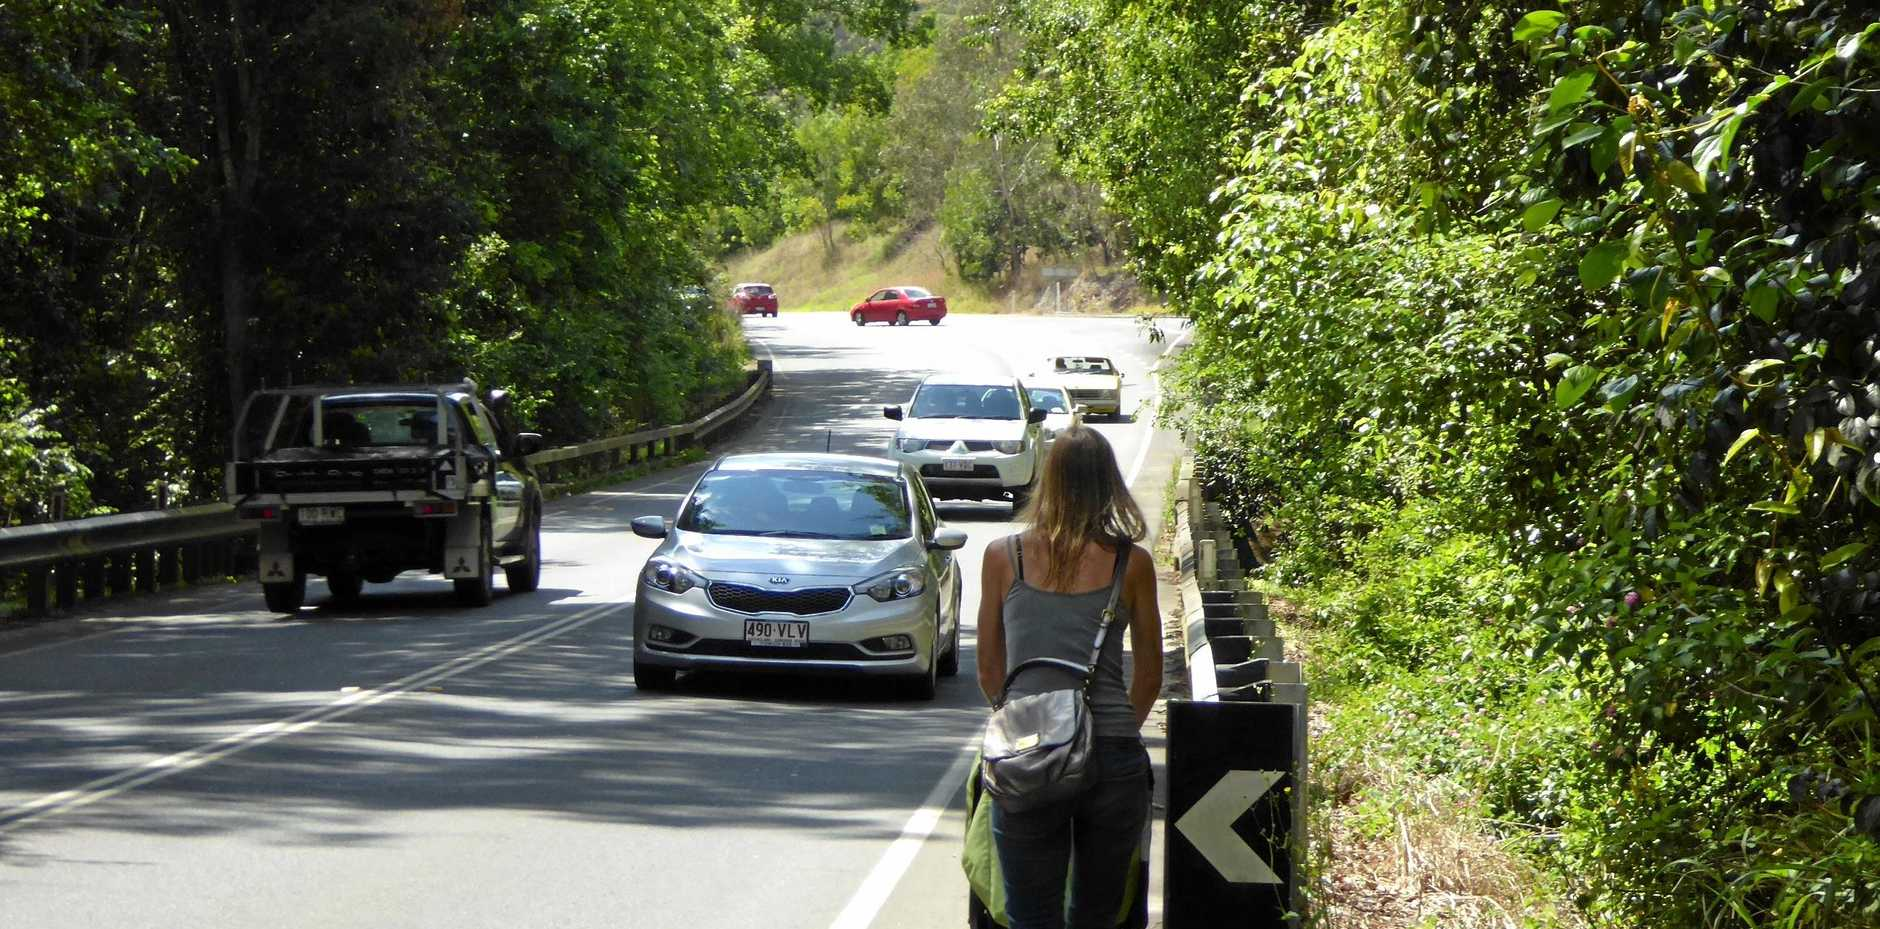 A pedestrian crosses a bridge on Eumundi Noosa Road that is shared with traffic.